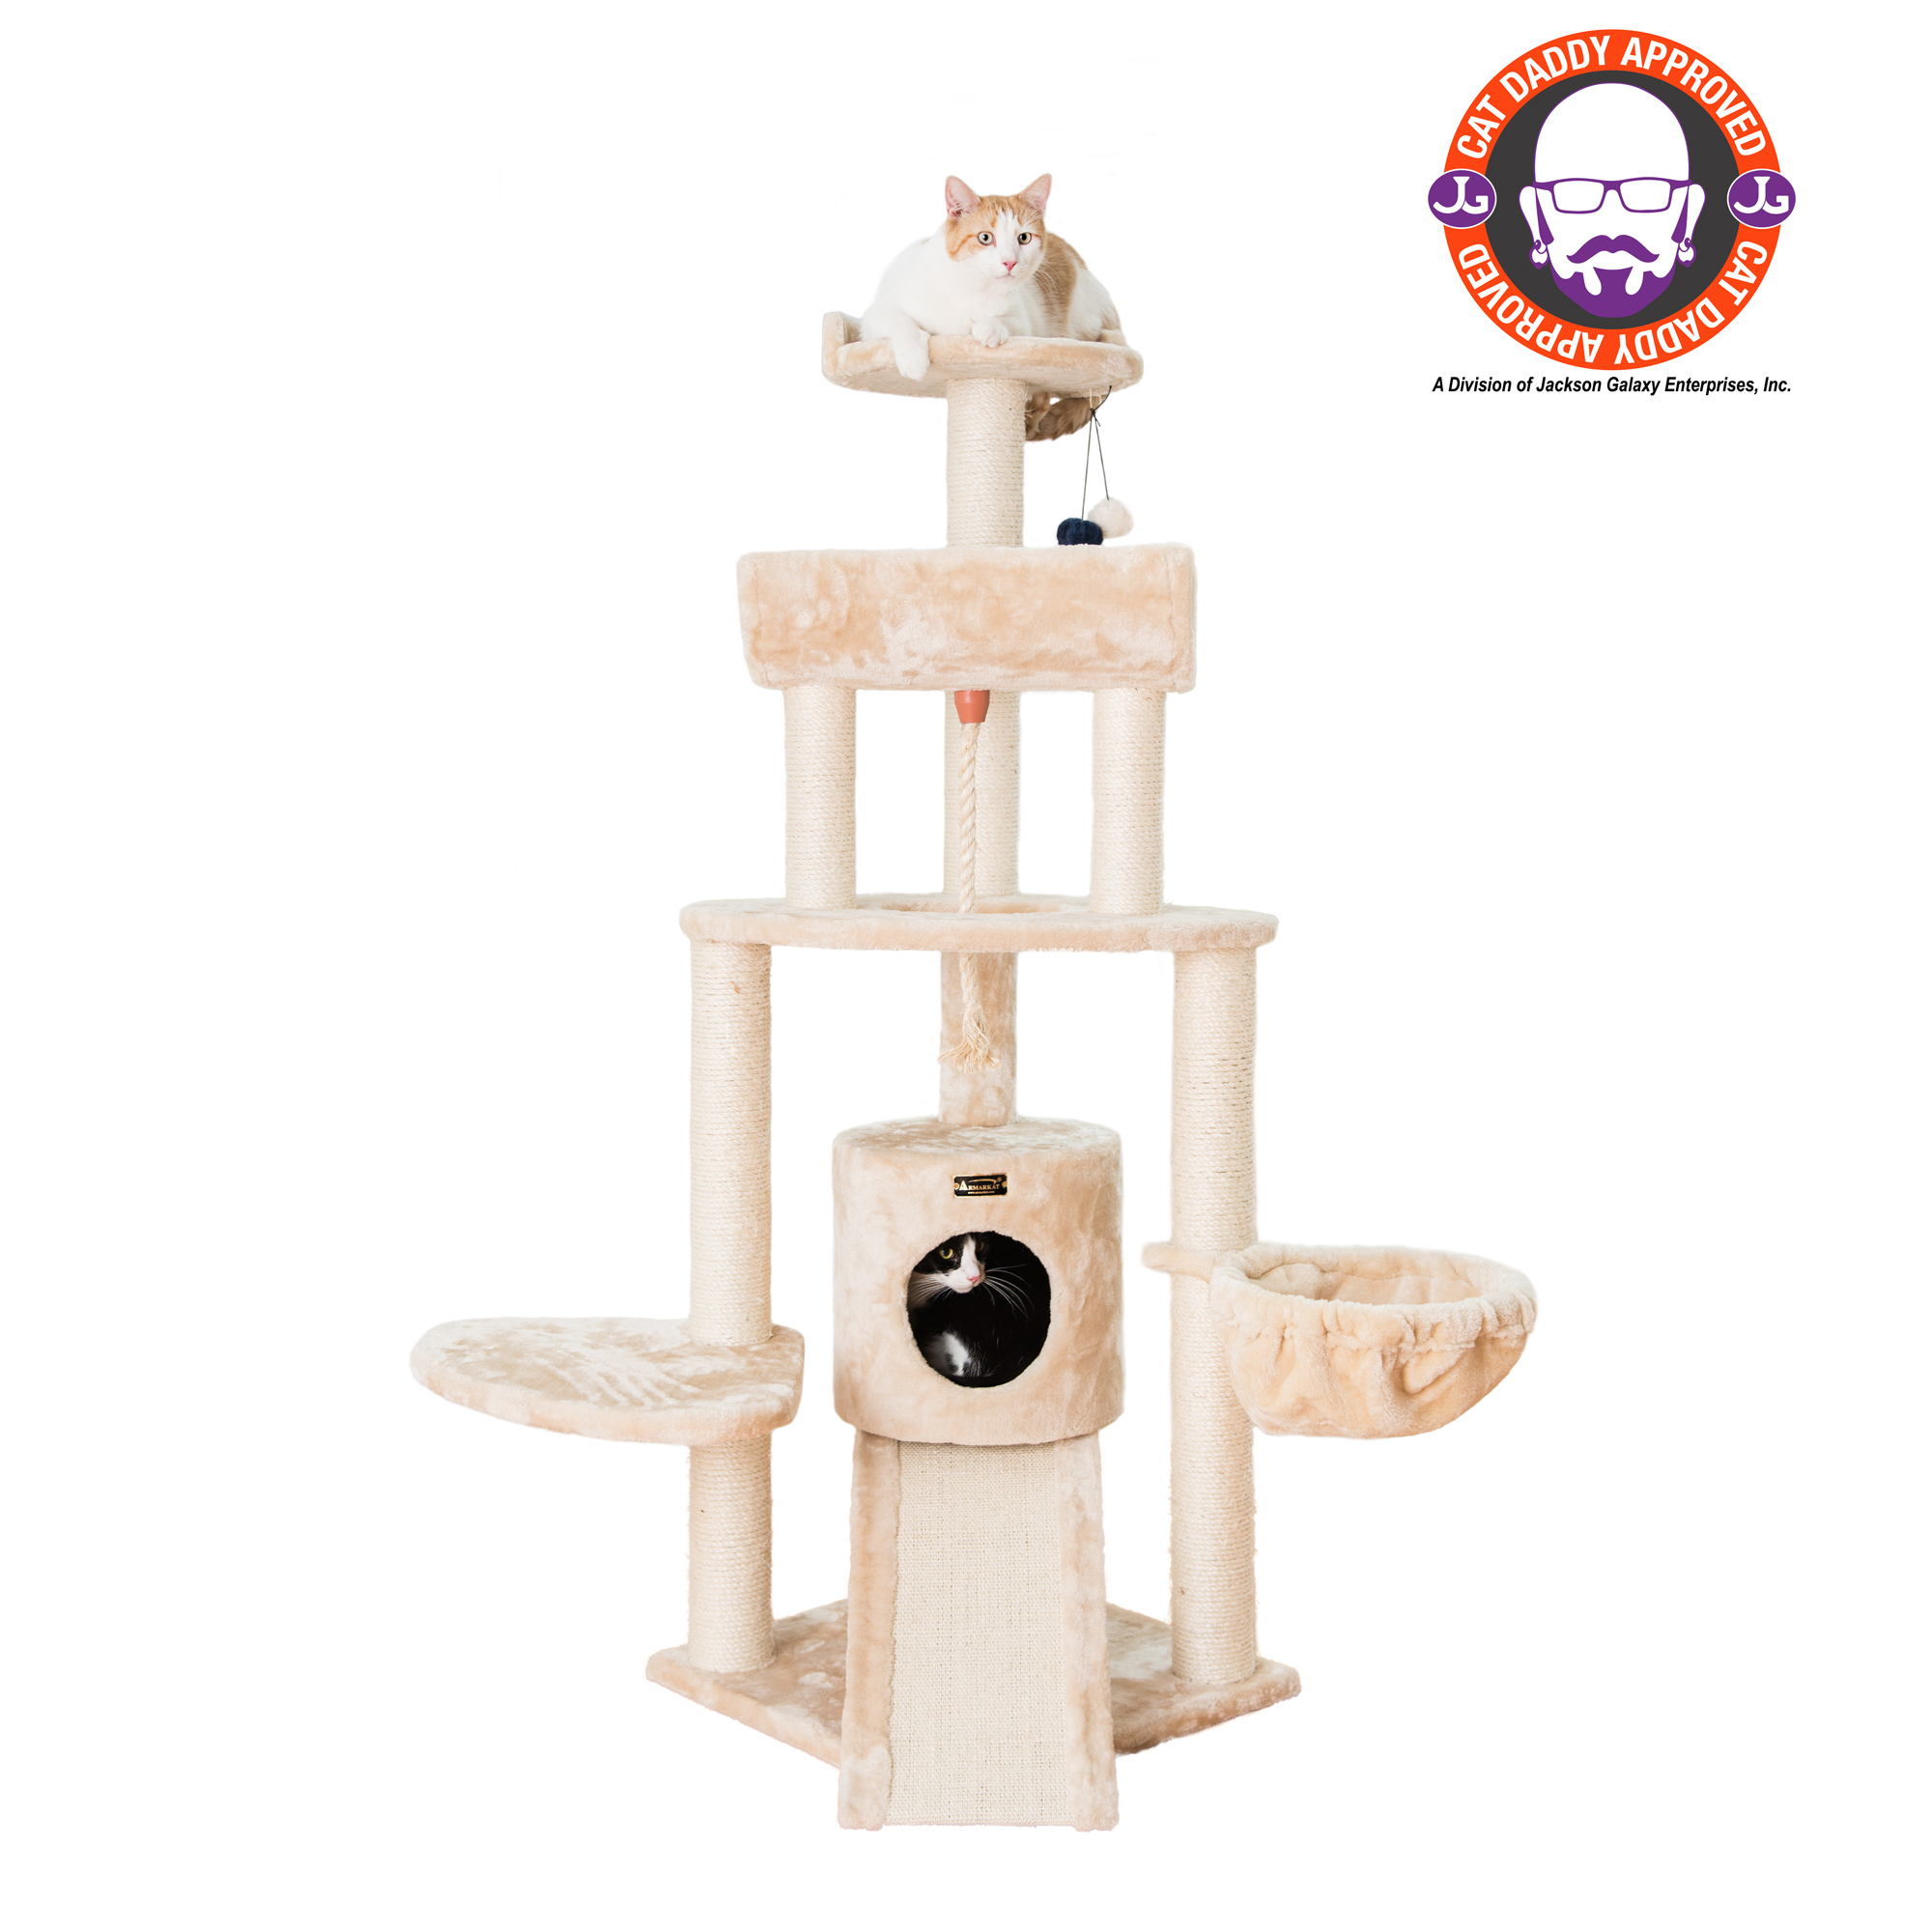 Image of AeroMark International A5806 Armarkat Cat Tree Beige